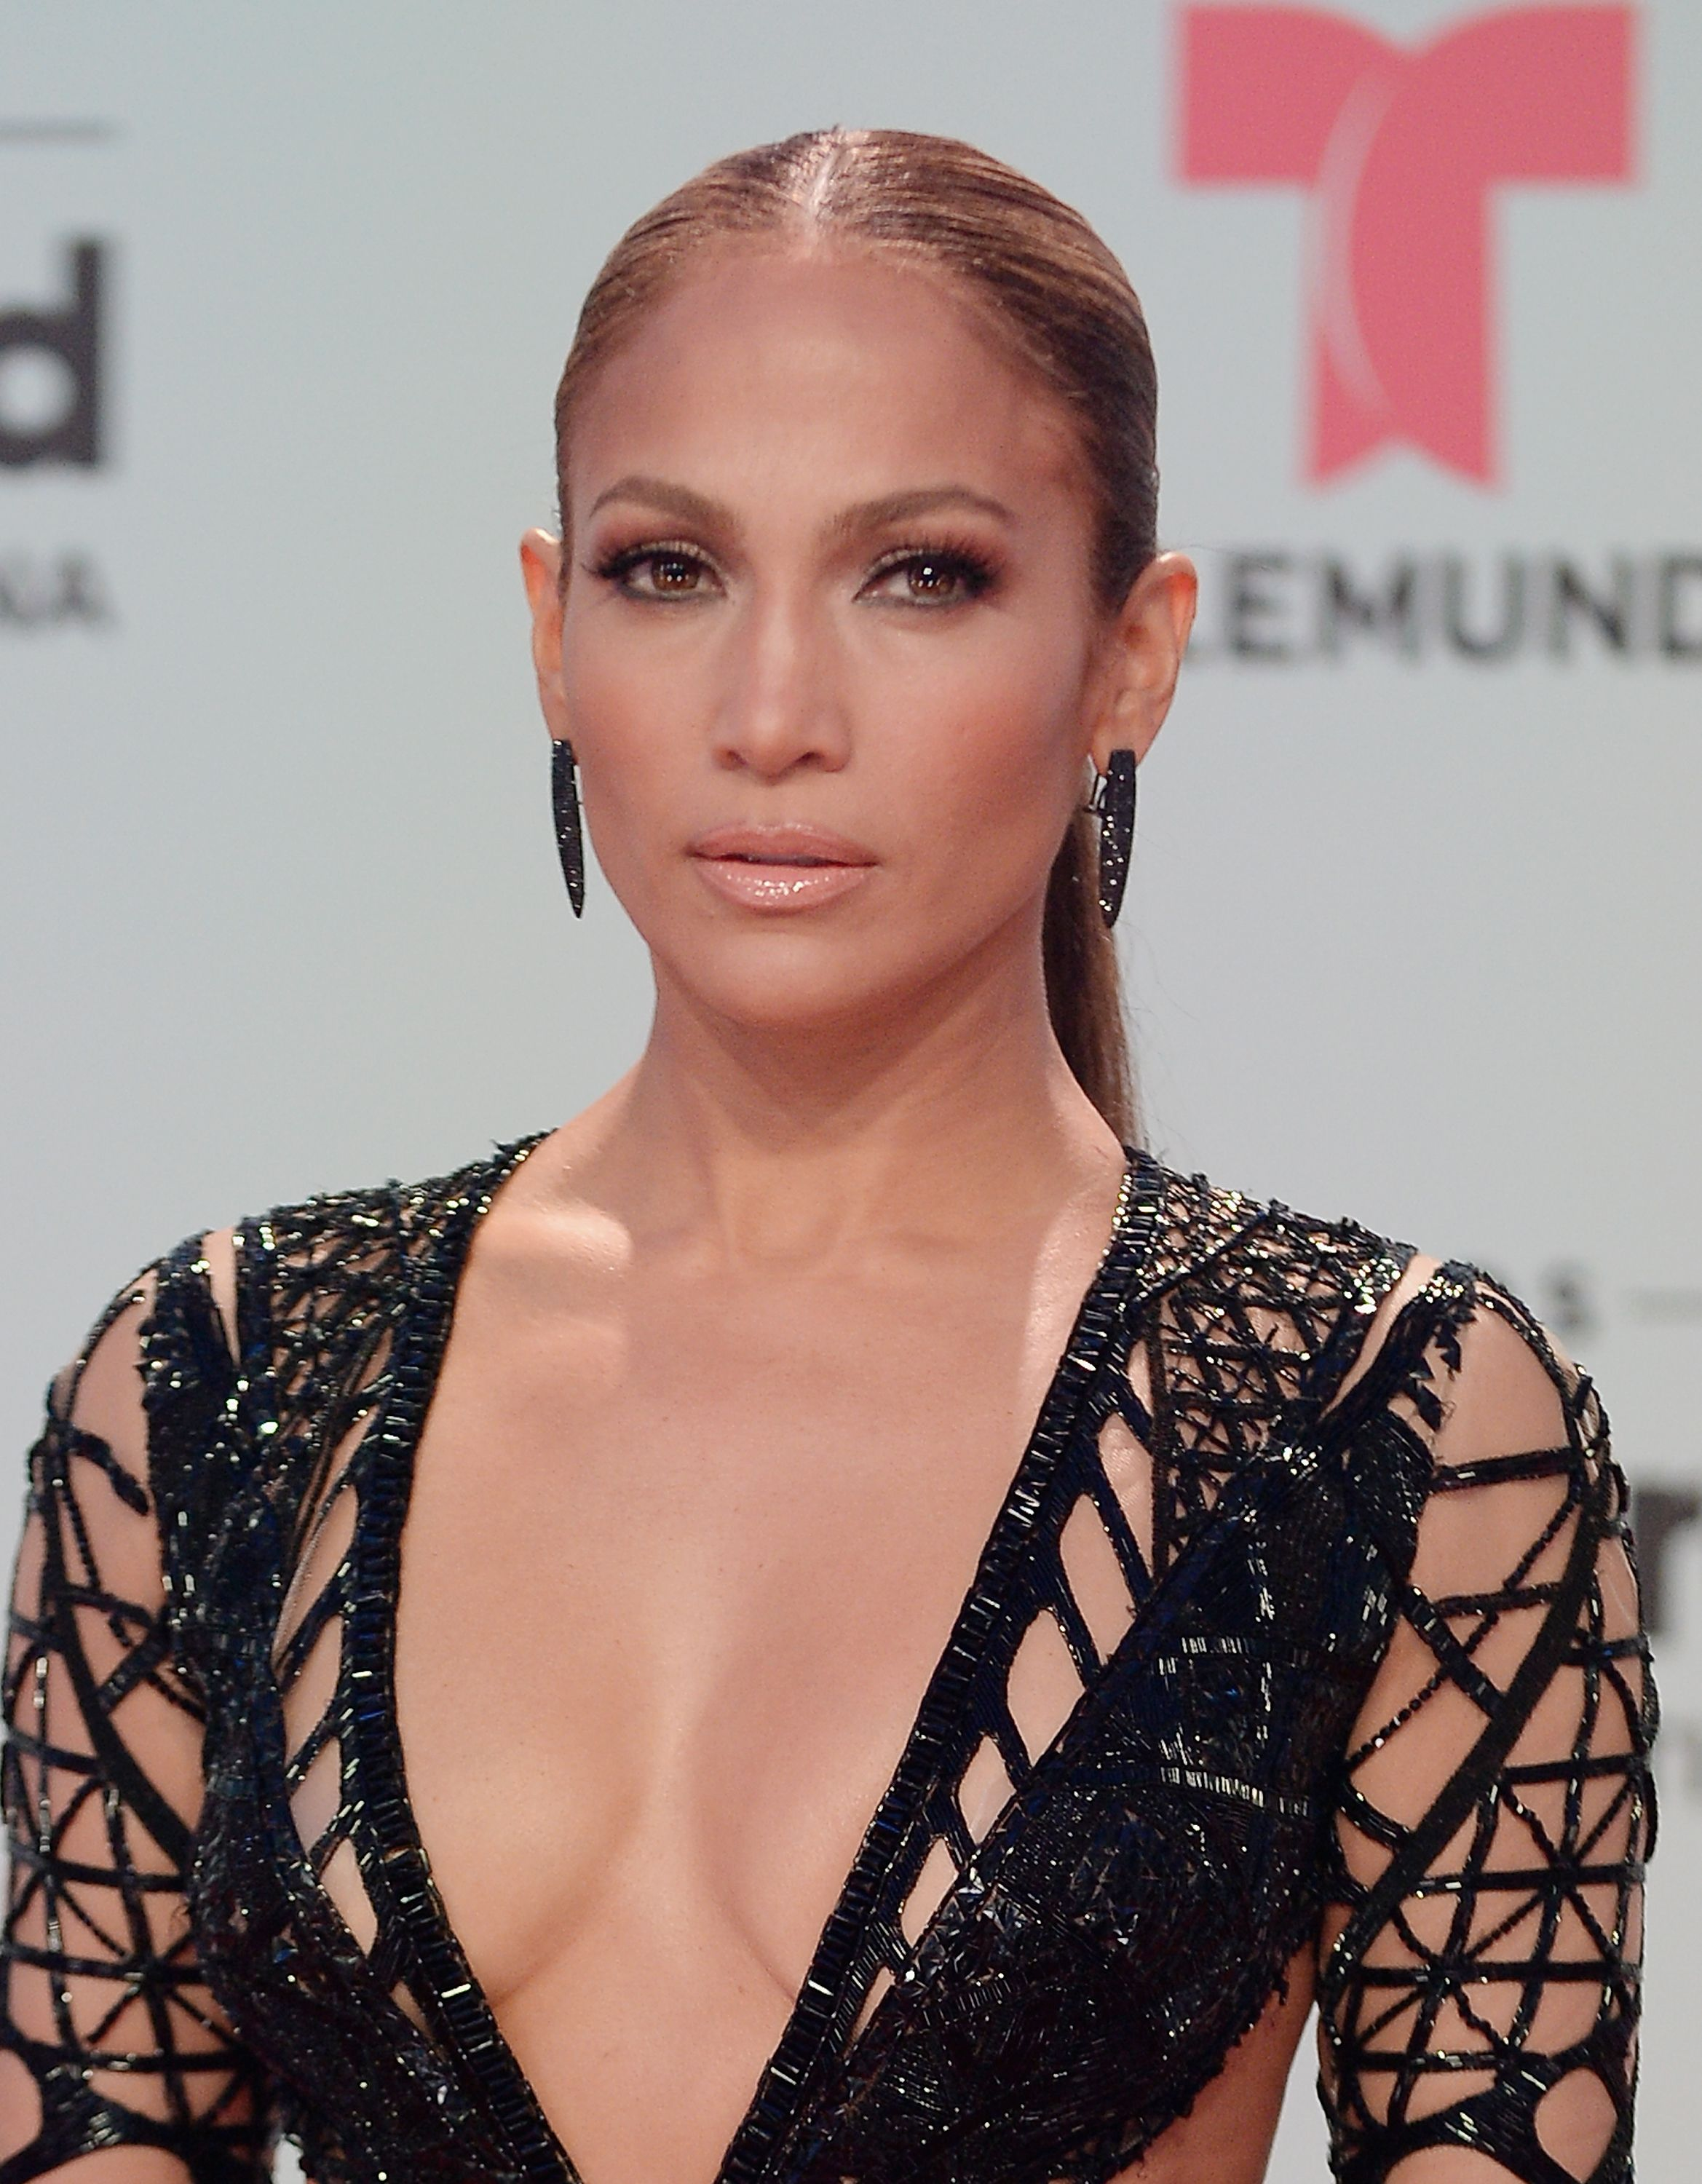 Jennifer Lopez attends the Billboard Latin Music Awards at Watsco Center on April 27, 2017 in Miami, Florida.   Photo: Getty Images